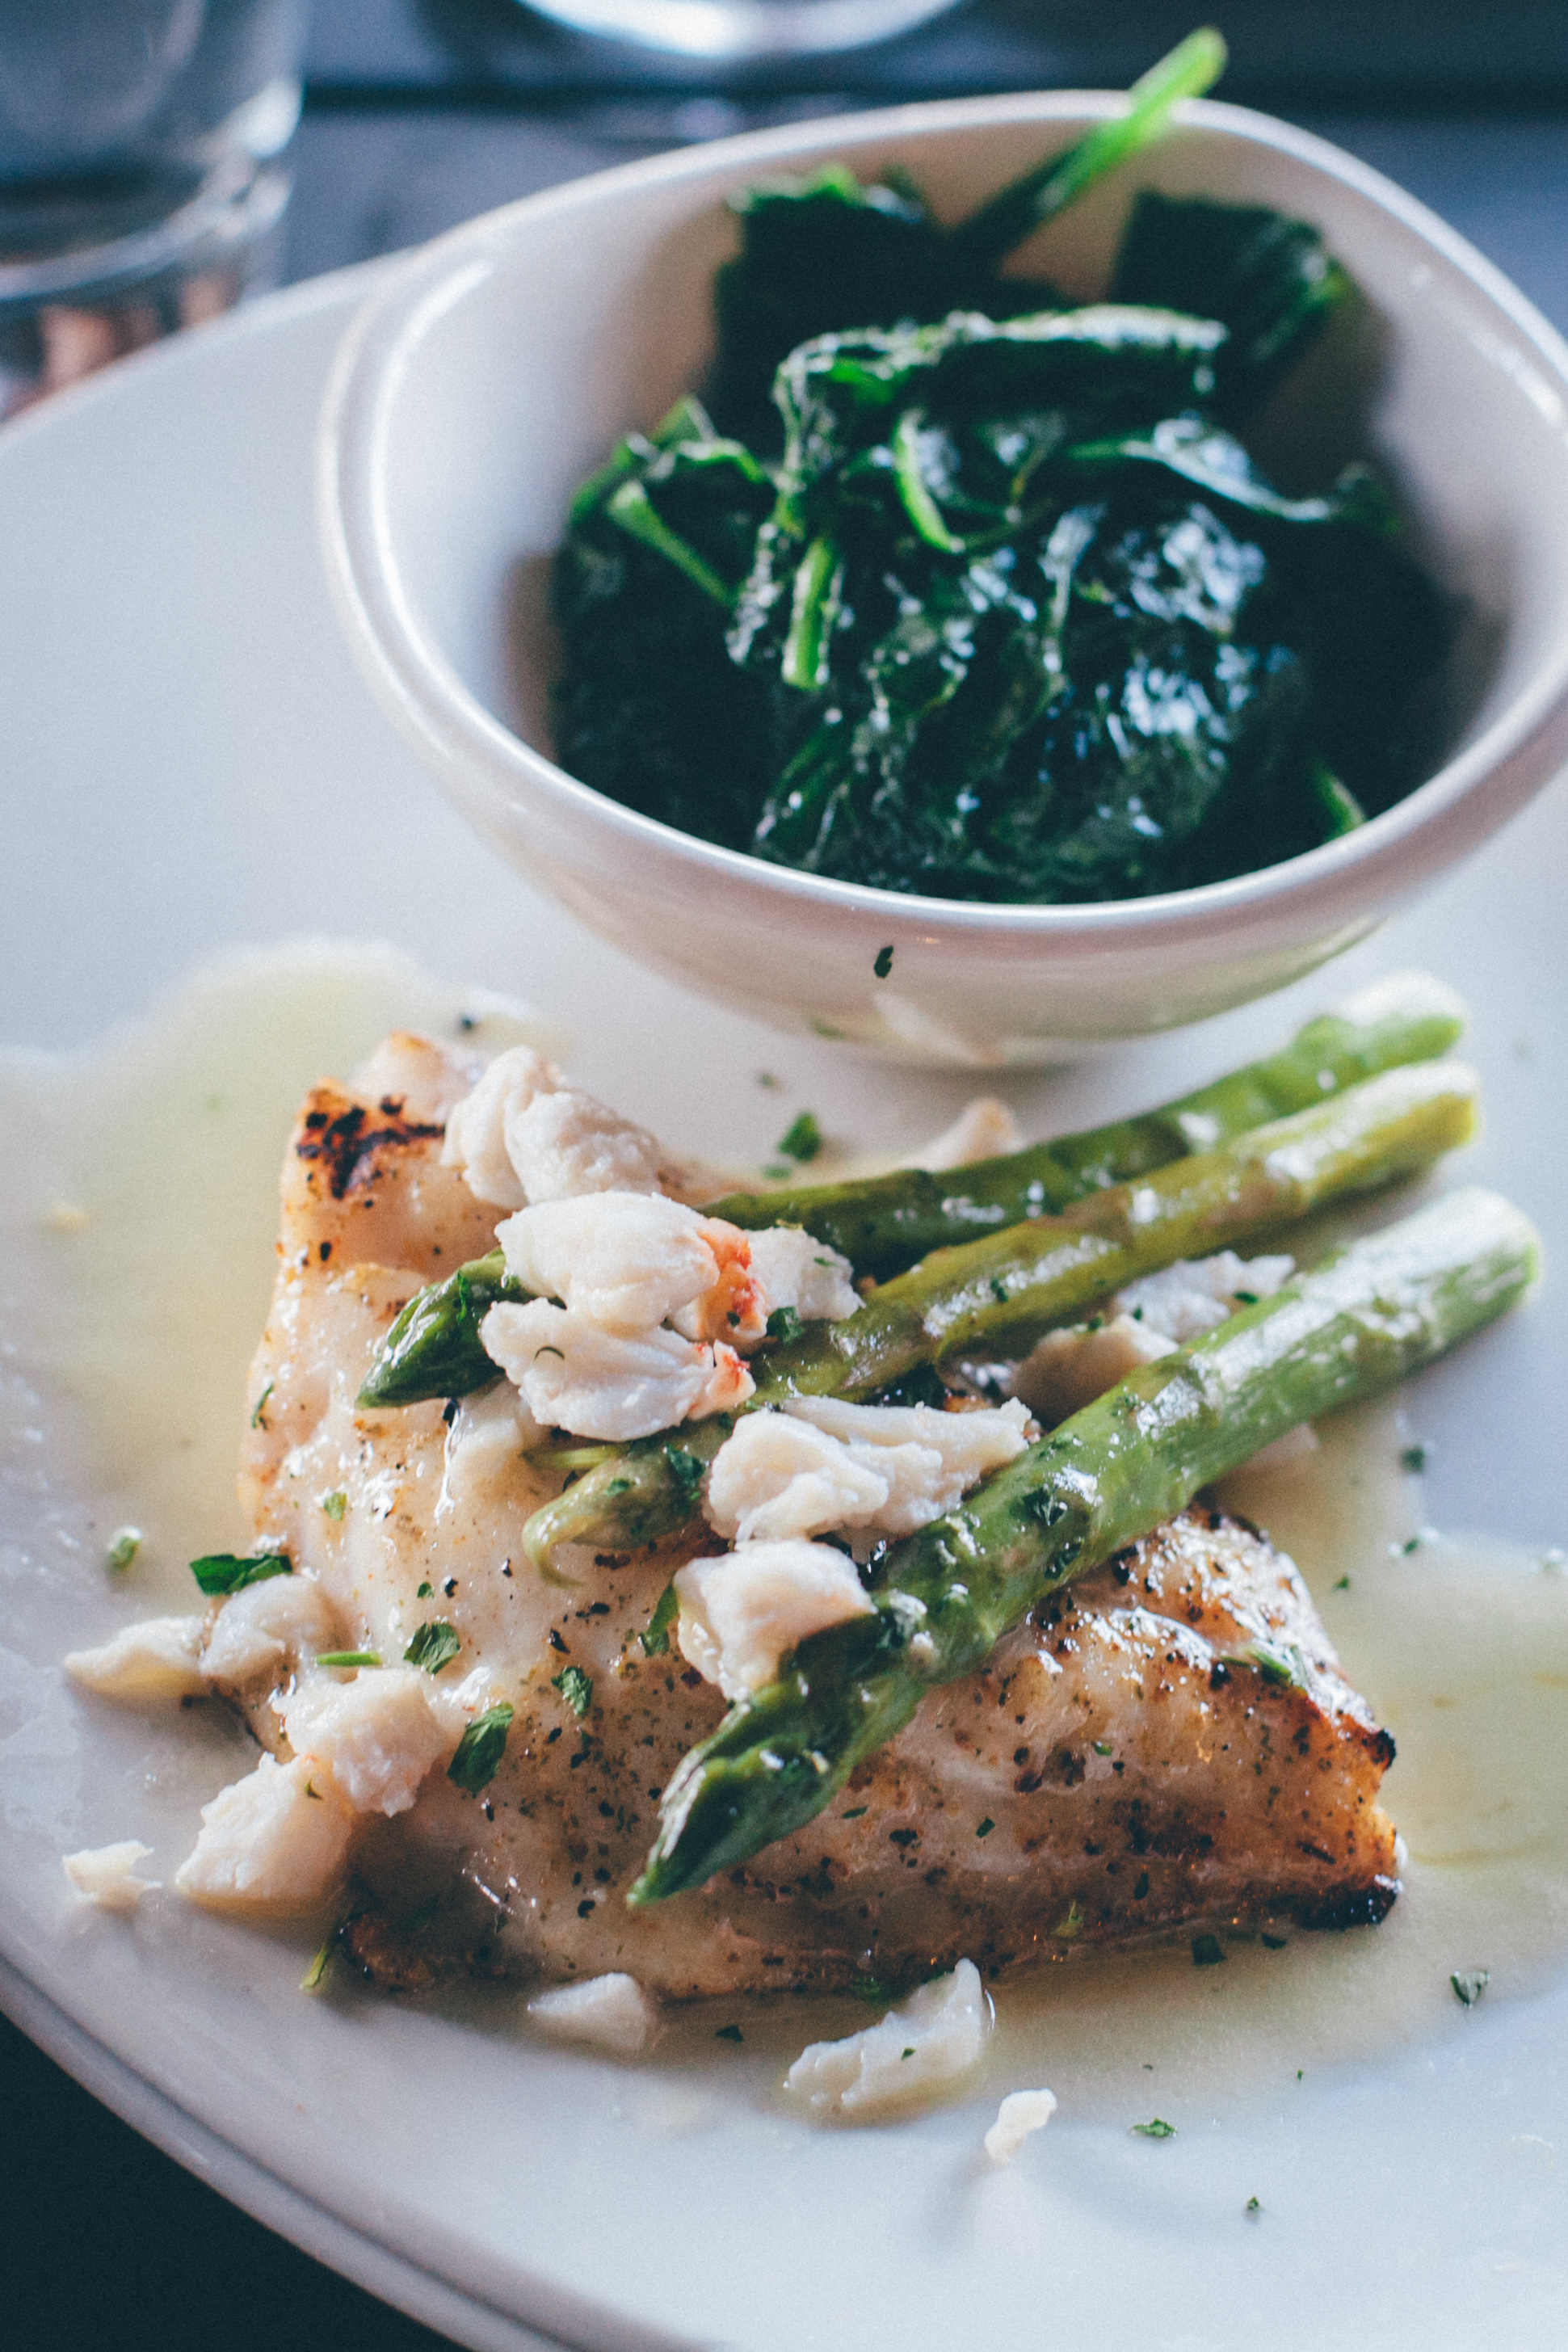 Fresh Grouper Oscar:Wood-grilled wild Grouper, topped with jumbo lump crab, freshly steamed asparagus and lemon butter, served with choice of two sides